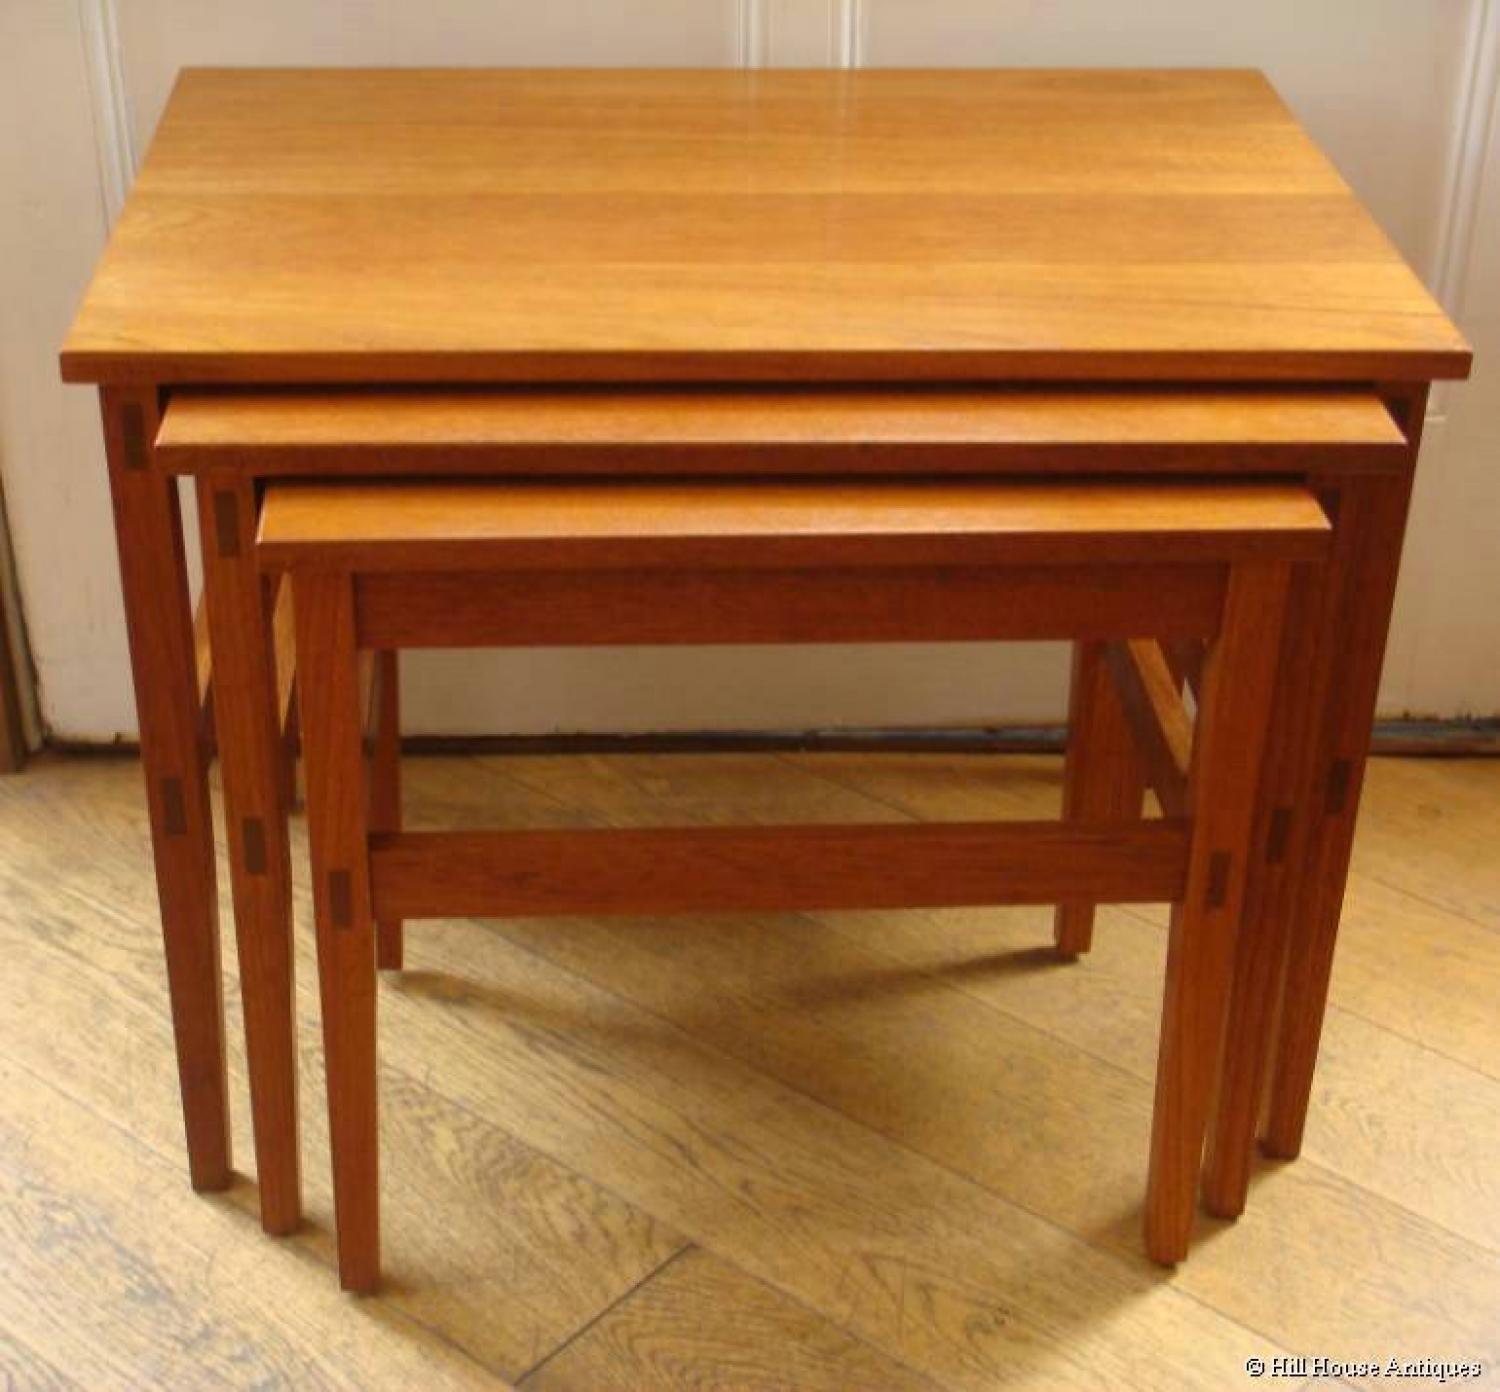 Cotswold School nest of tables